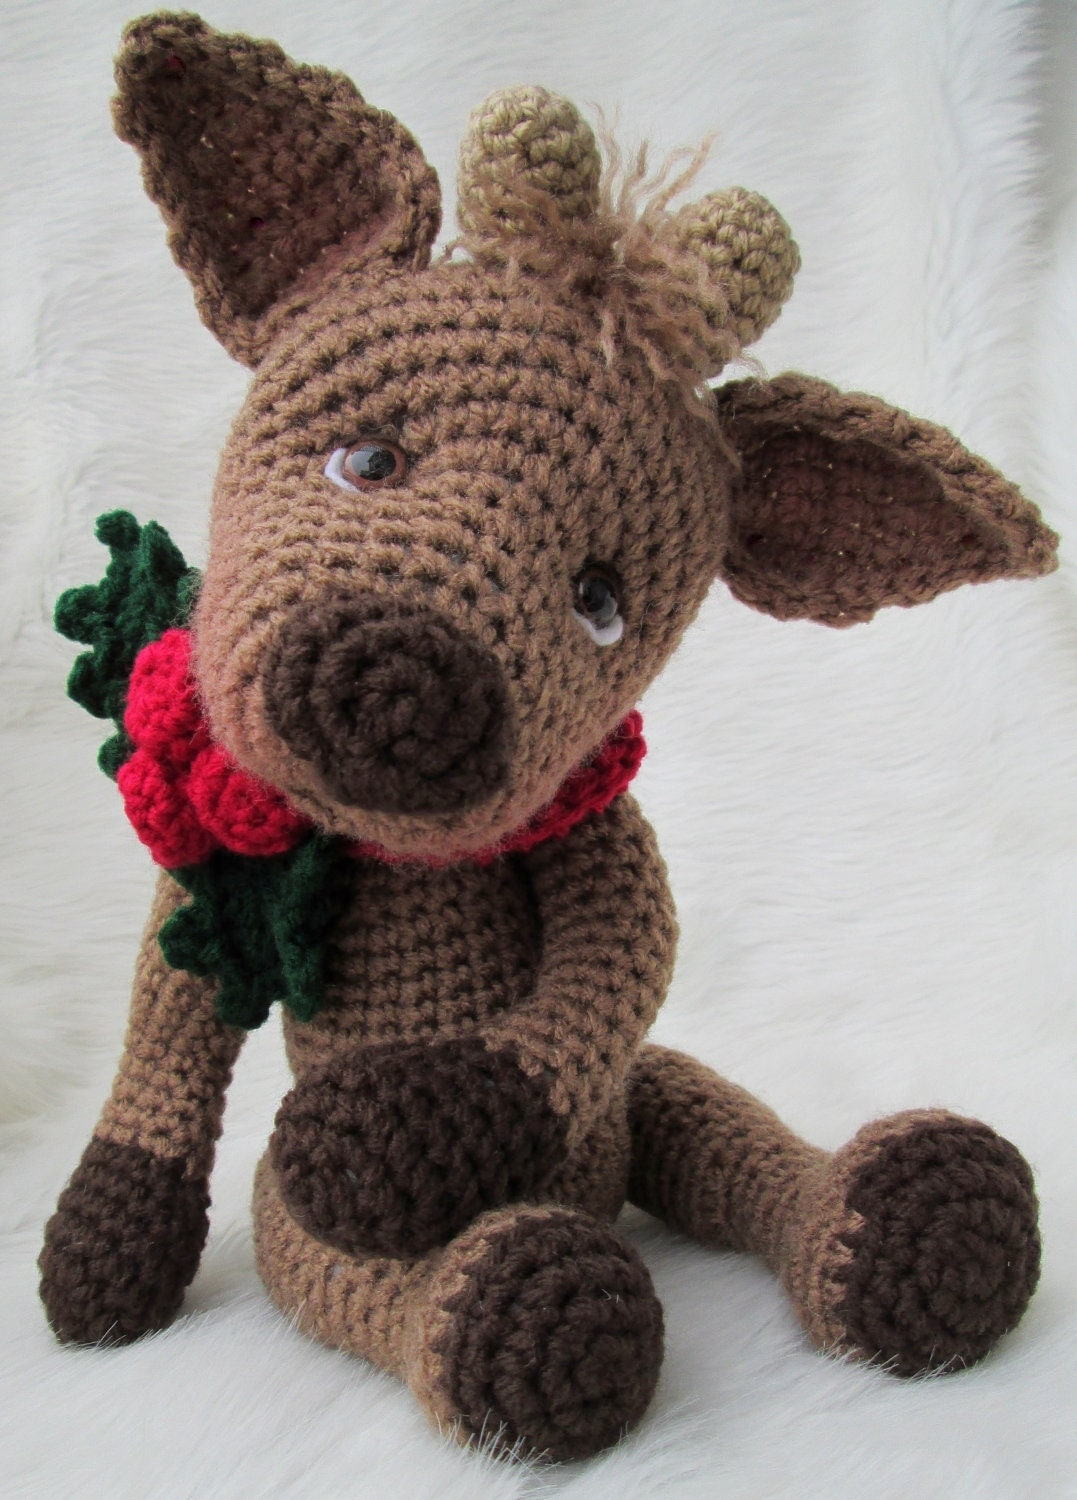 Crochet Pattern Cute Reindeer by Teri Crews Wool and Whims Instant Download PDF Format - WoolandWhims